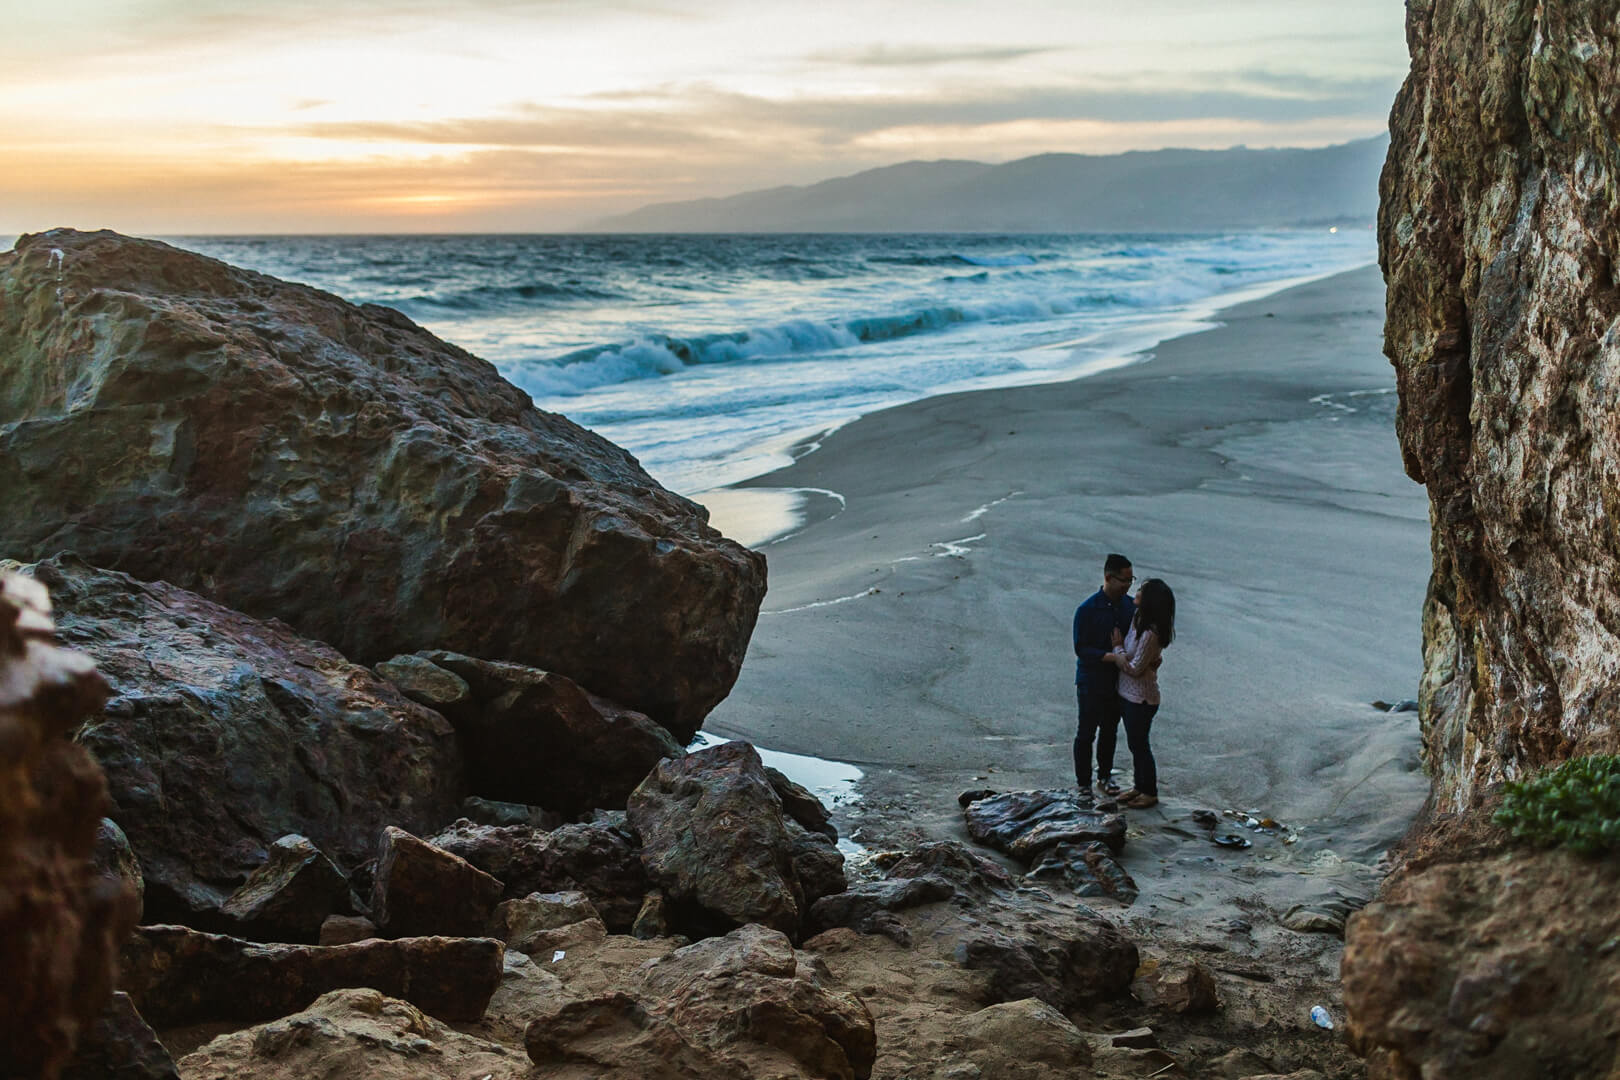 A Fun Golden Hour Engagement Shoot Climbing Rocks And Exploring At Point Dume Zuma Beach In Malibu